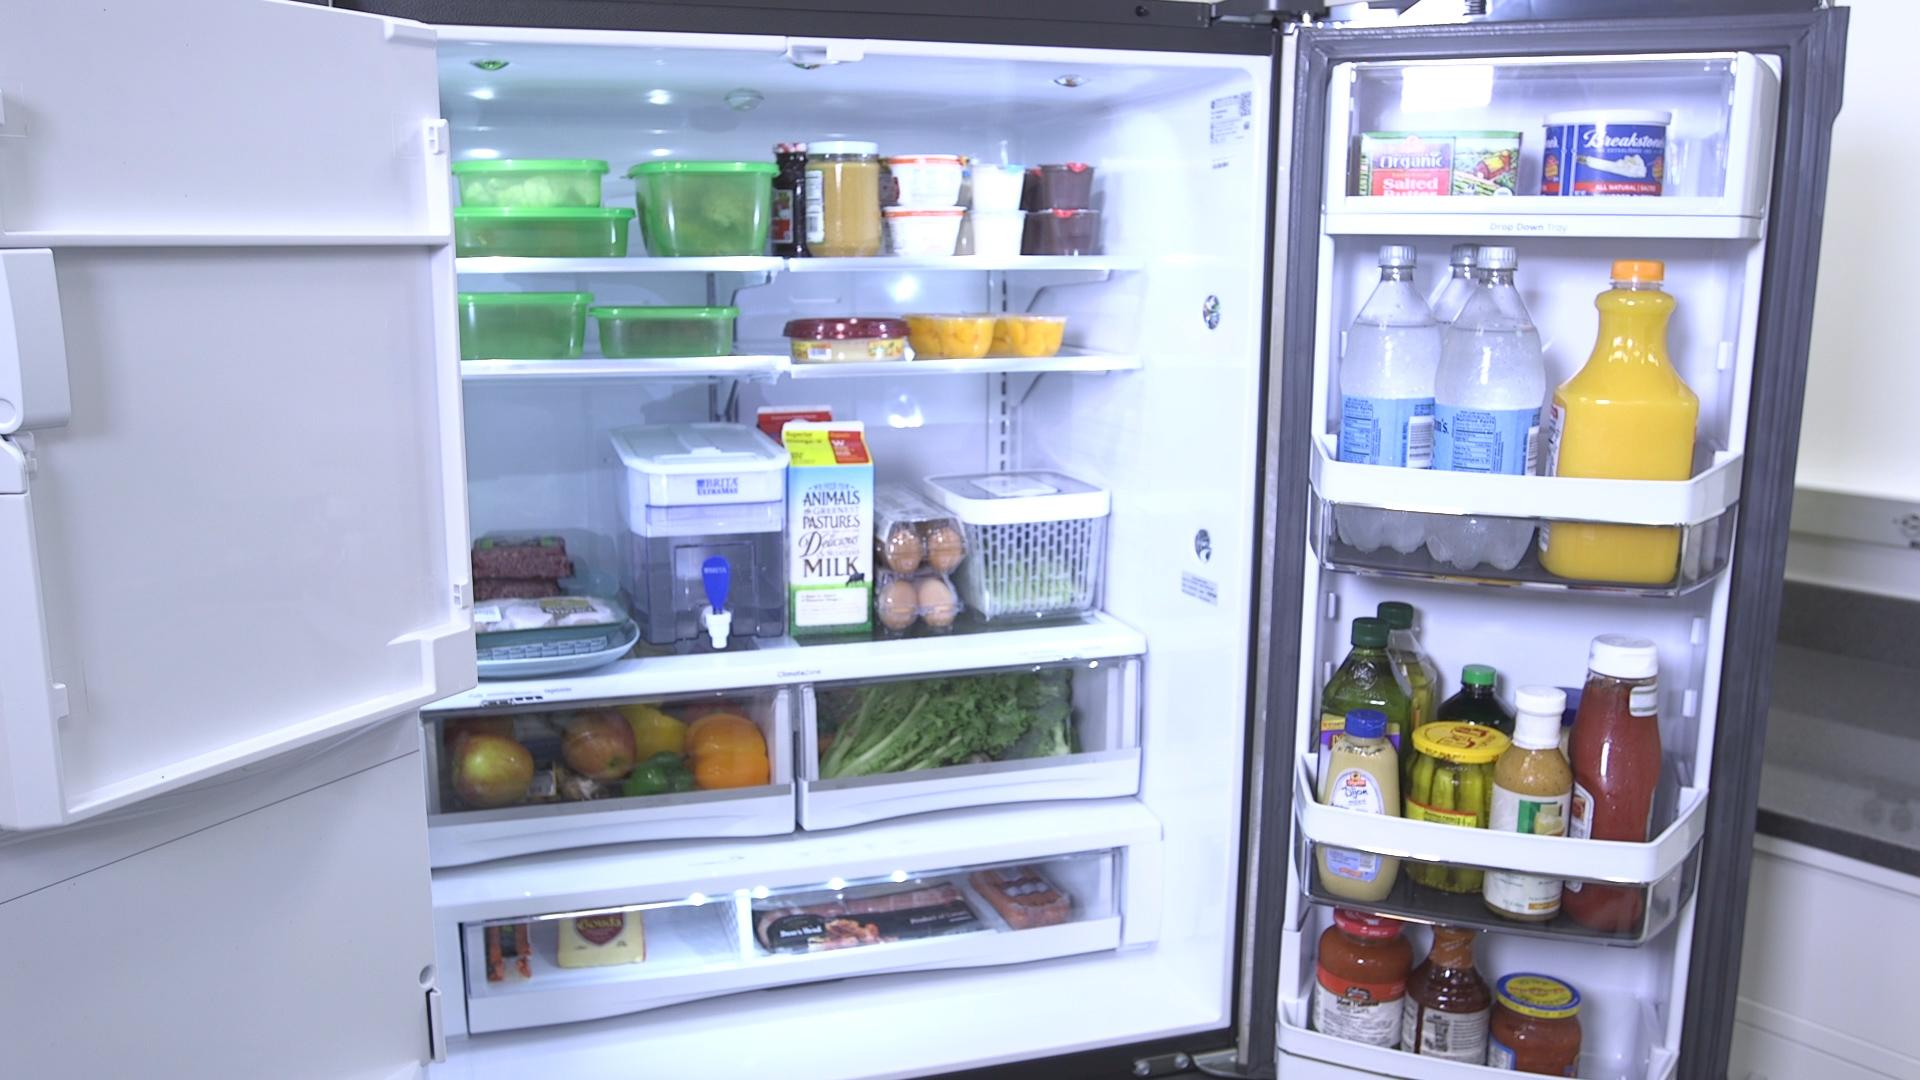 How to Organize a Refrigerator - Consumer Reports